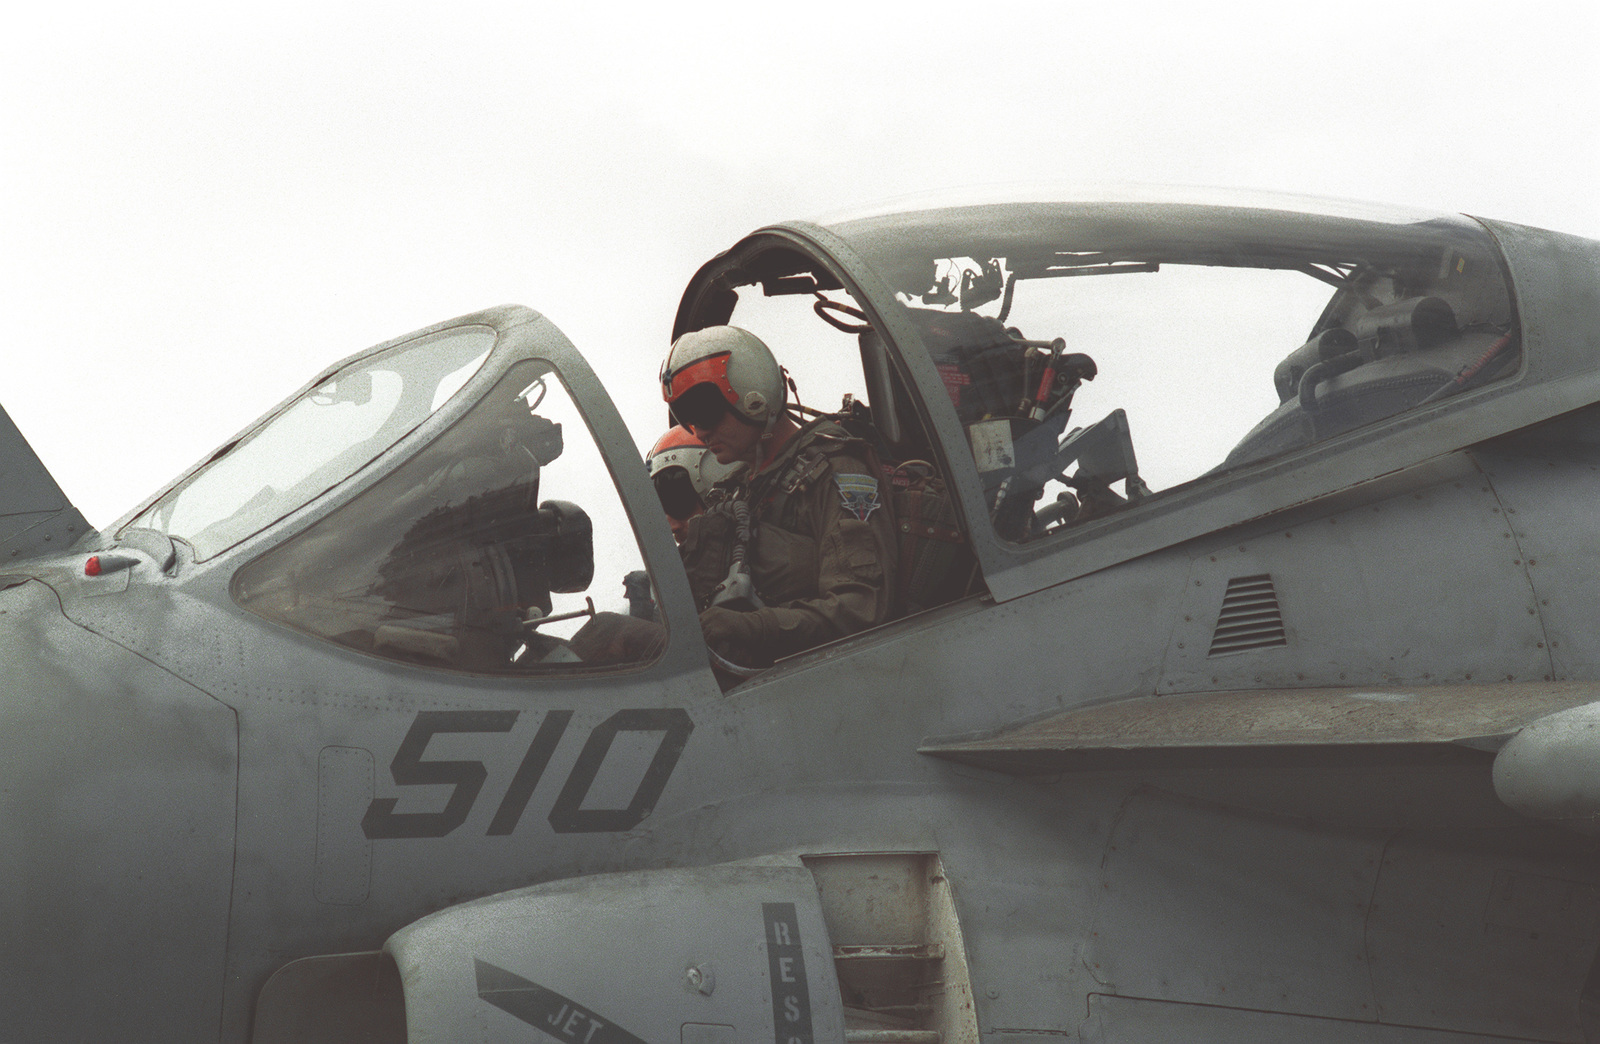 The pilot and bombardier-navigator aboard the A-6E Intruder aircraft on the flight deck of the nuclear-powered aircraft carrier USS ABRAHAM LINCOLN (CVN-72) make final preparations for launch during the LINCOLN's shakedown cruise